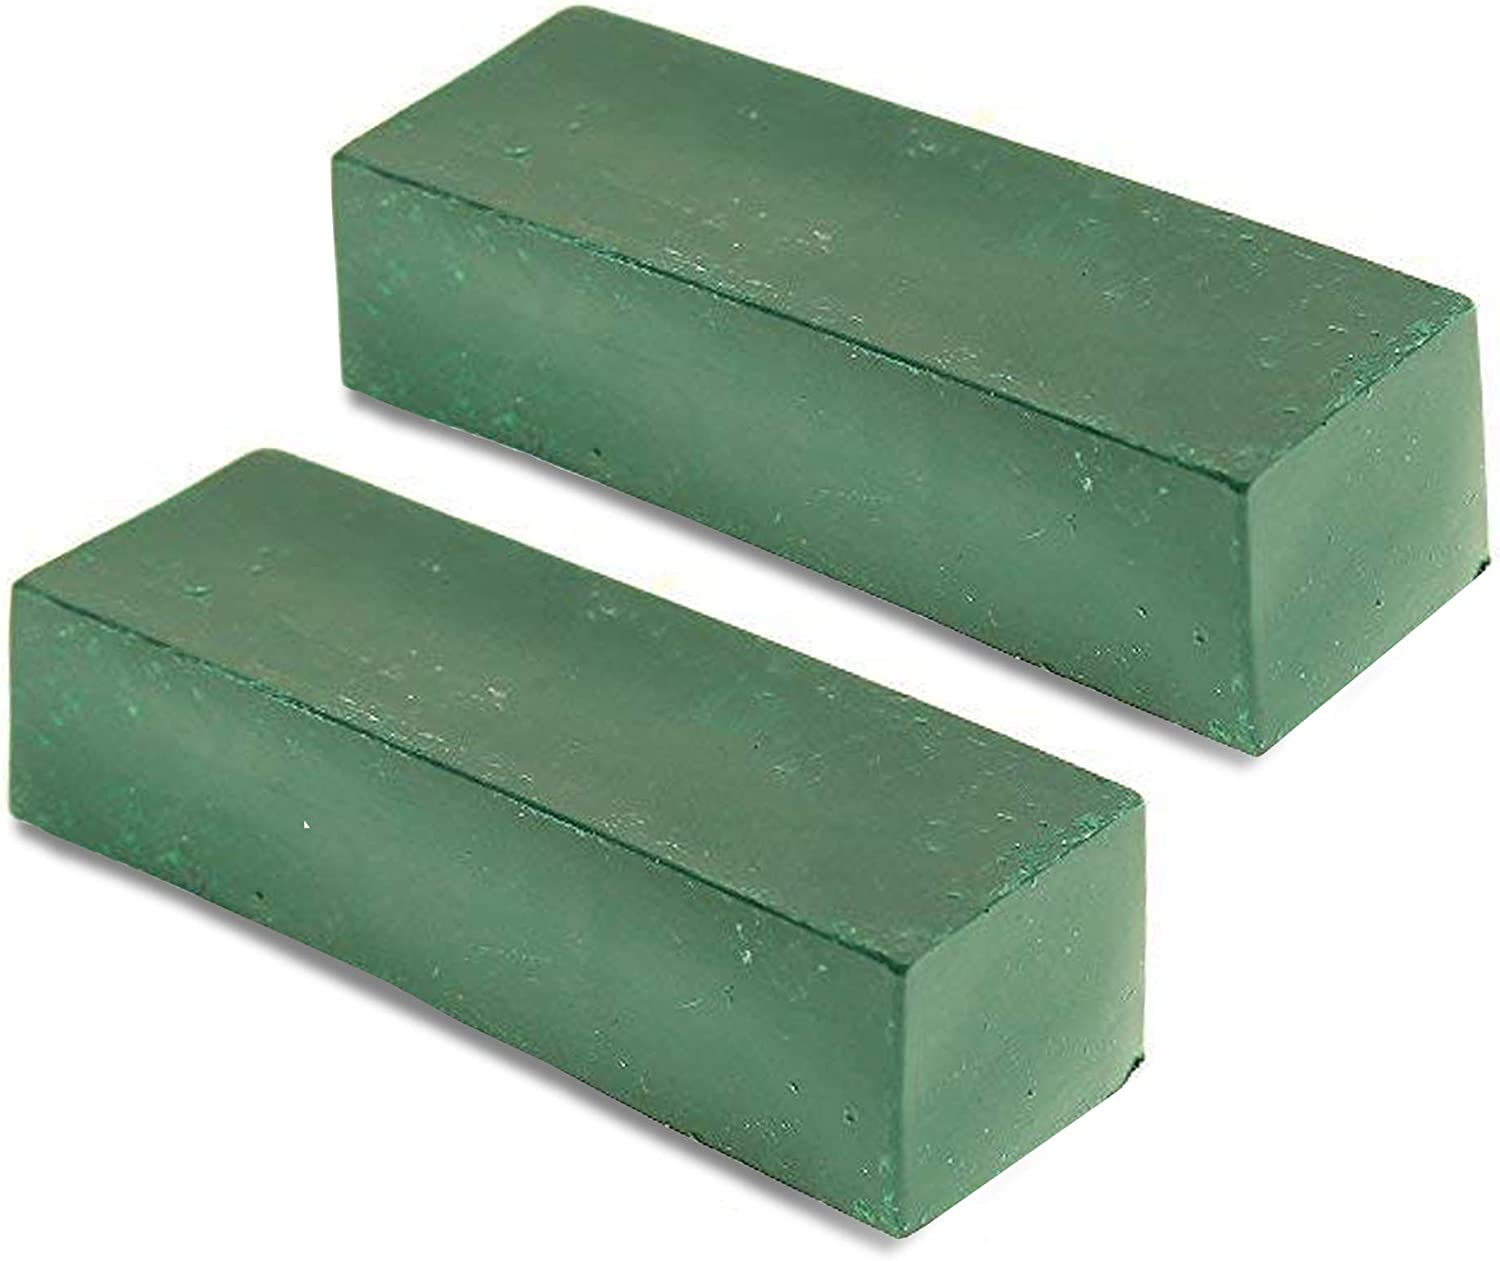 Green Strop Compound PP02 Stainless Carbon Steel Polishing Compound Chromium Oxide Green Rouge Polishing Compound Buffing Compound 2 Bars 4 Oz BeaverCraft Leather Strop Green Honing Compound